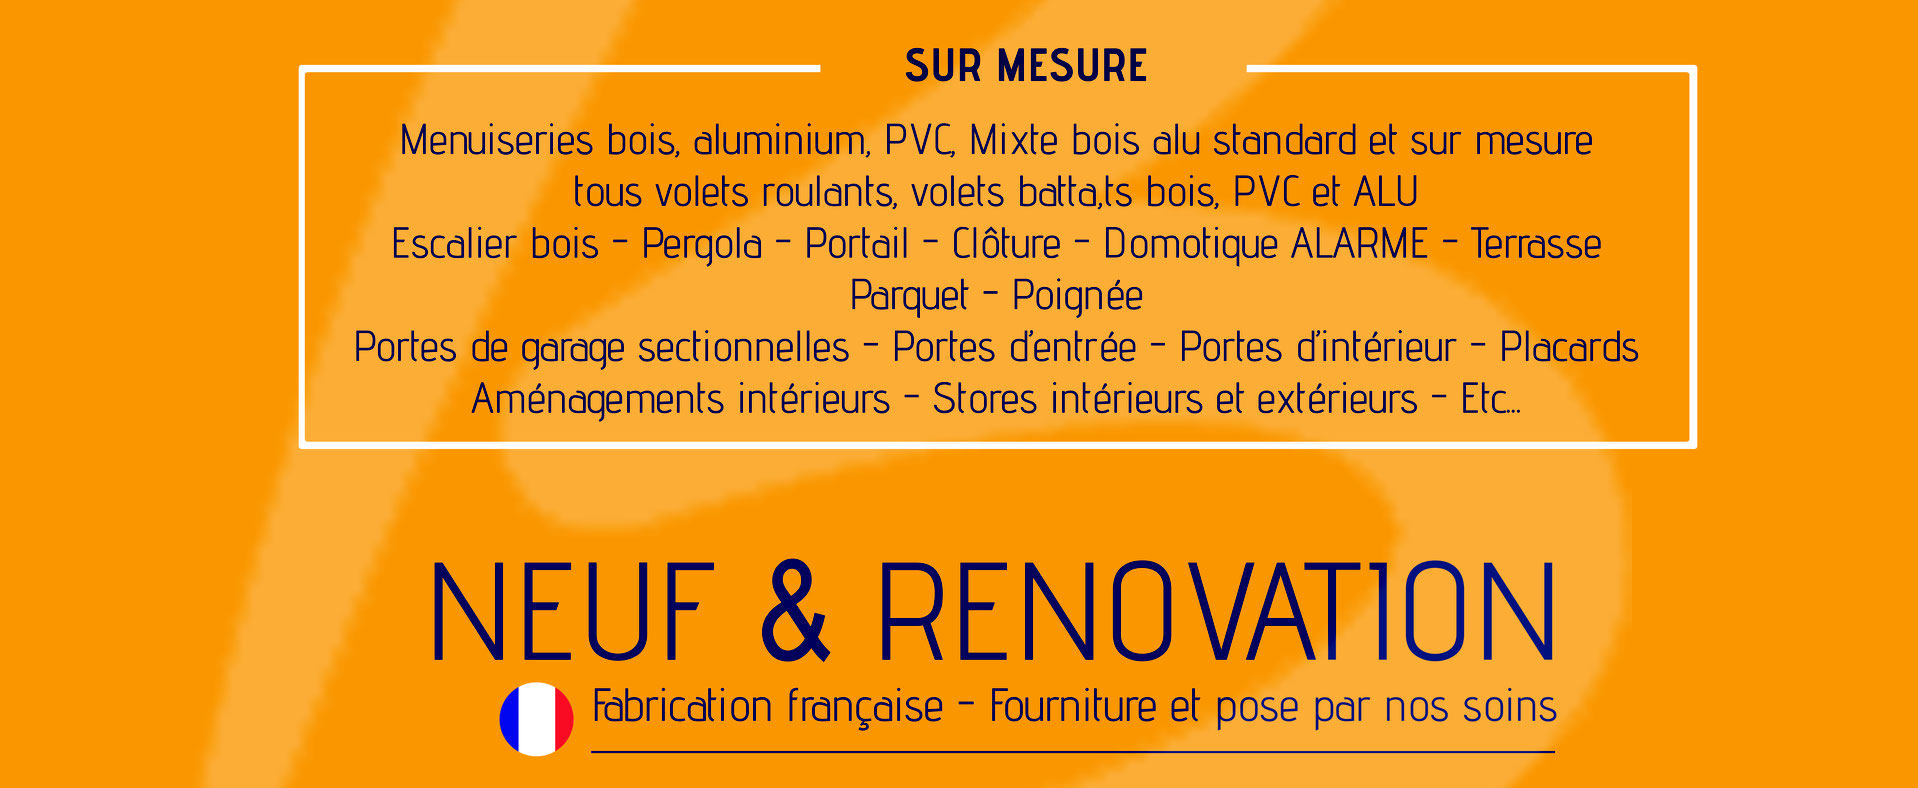 Plan du site menuiseries automatismes et domotique for Porte de garage clermont ferrand